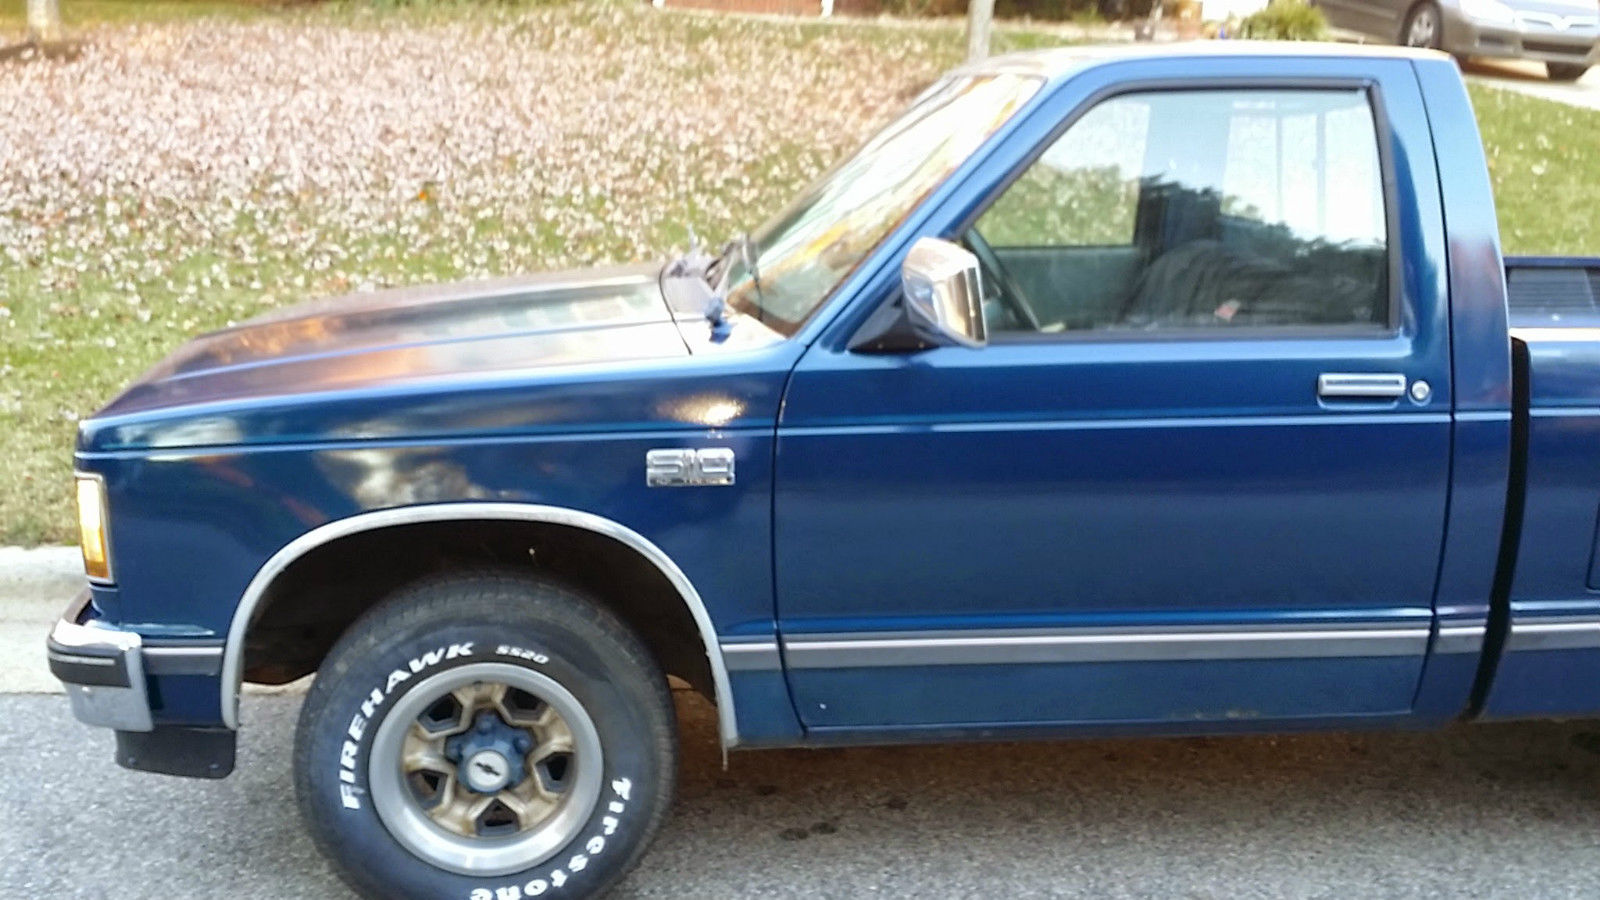 fully rebuilt 1987 chevy chevrolet s10 s 10 pickup truck new motor new trans classic. Black Bedroom Furniture Sets. Home Design Ideas